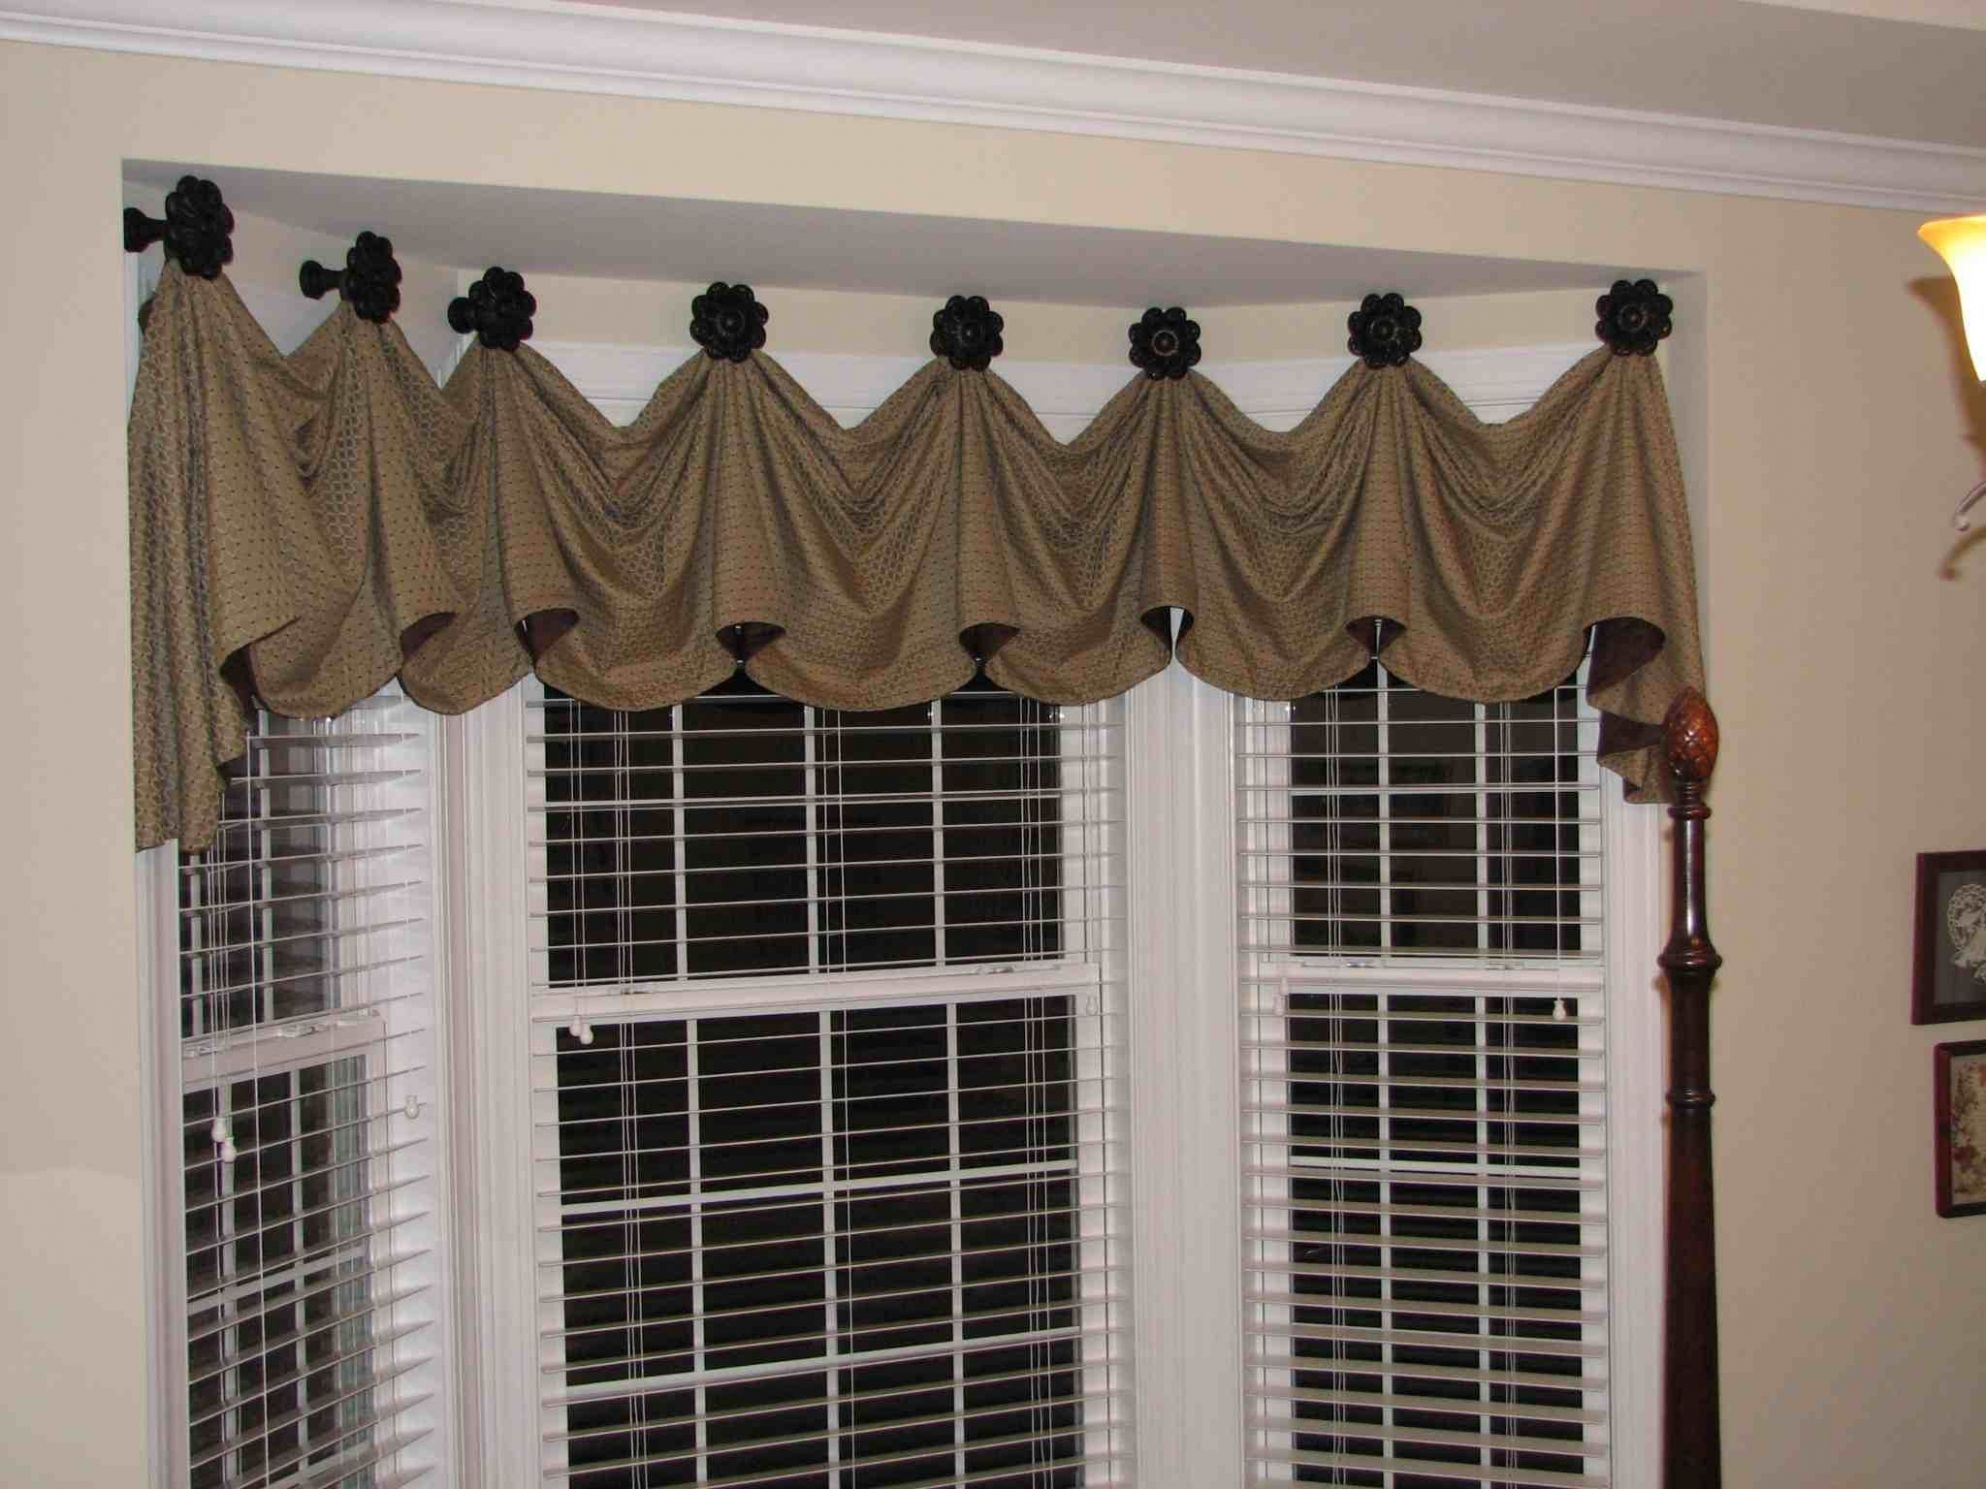 The Most Effective Solutions to Your Bay Window Curtains (With ..